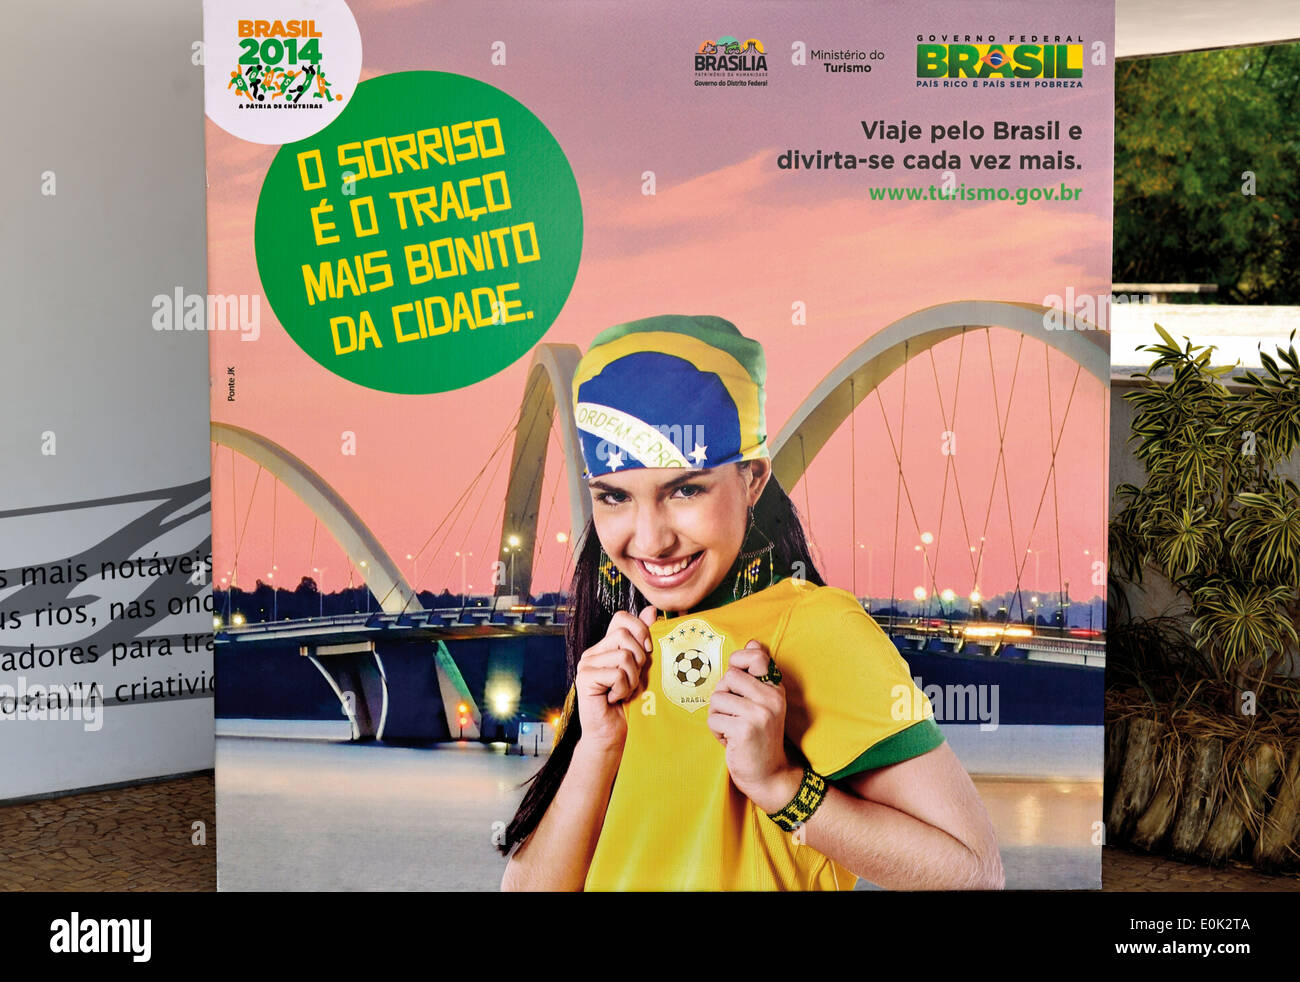 Brazil: Publicity placard for the Soccer World Championship 2014 in Brasilia - Stock Image